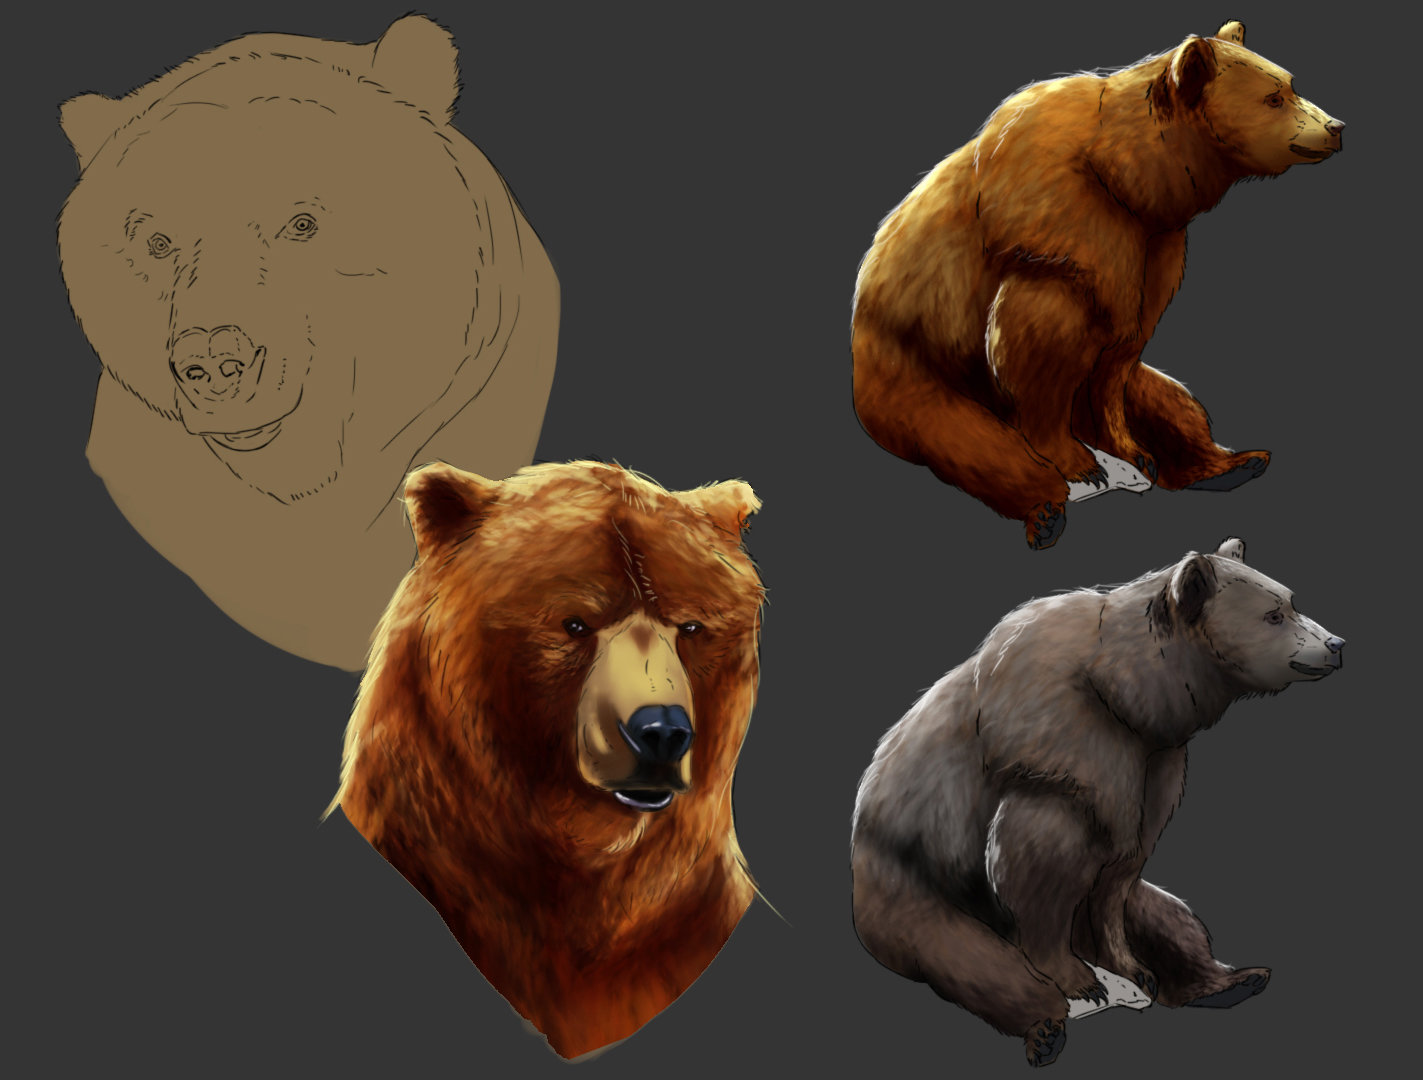 Konrad langa bear sketches2